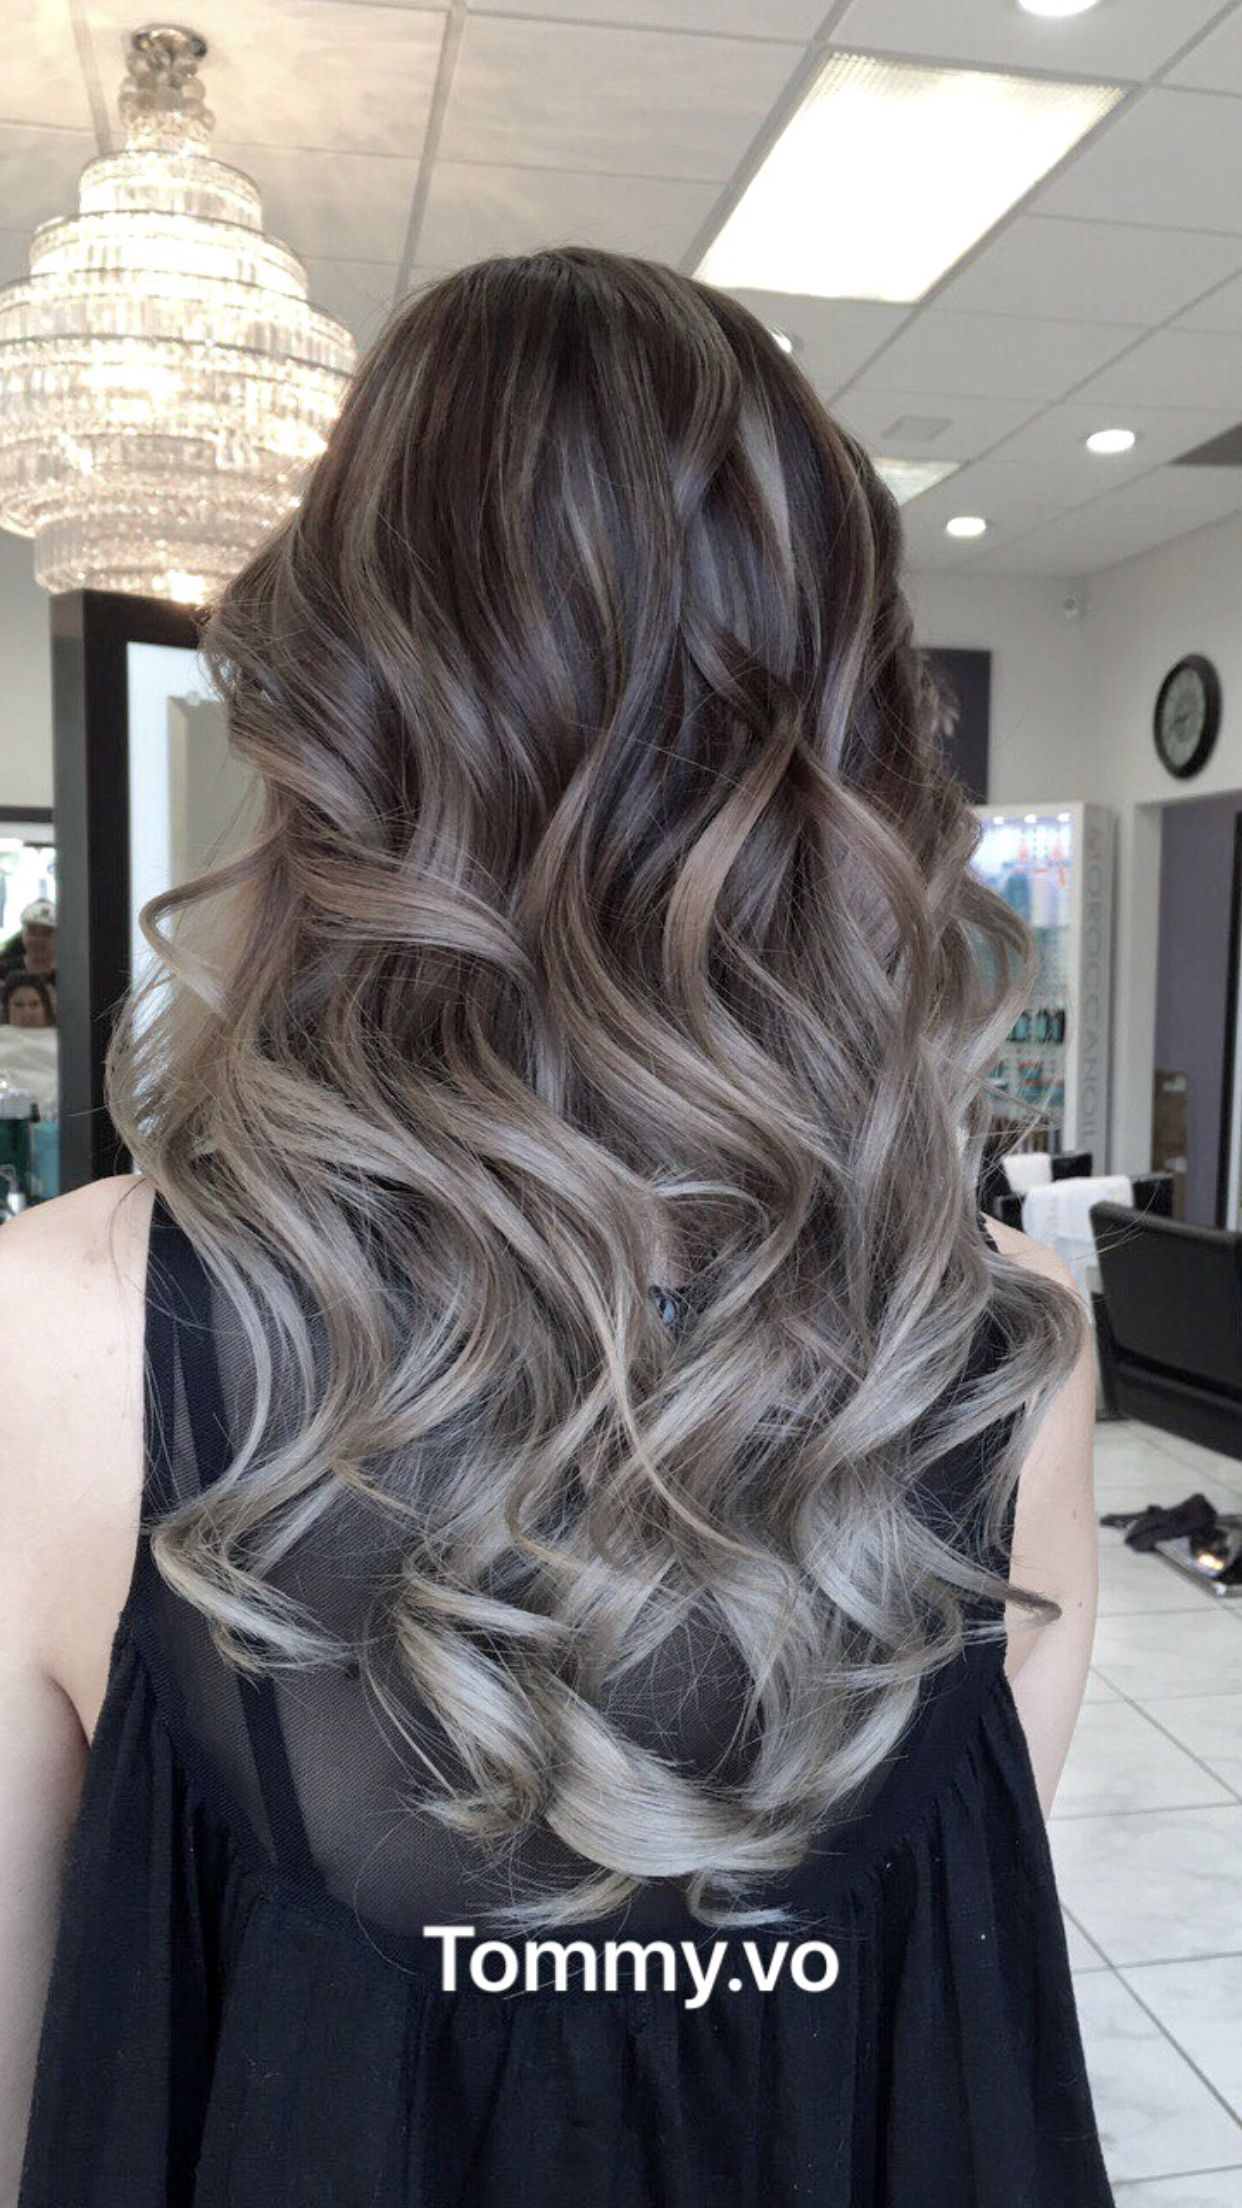 Pin By Lauren L On Hair Style Hair Styles Ash Hair Color Balayage Hair